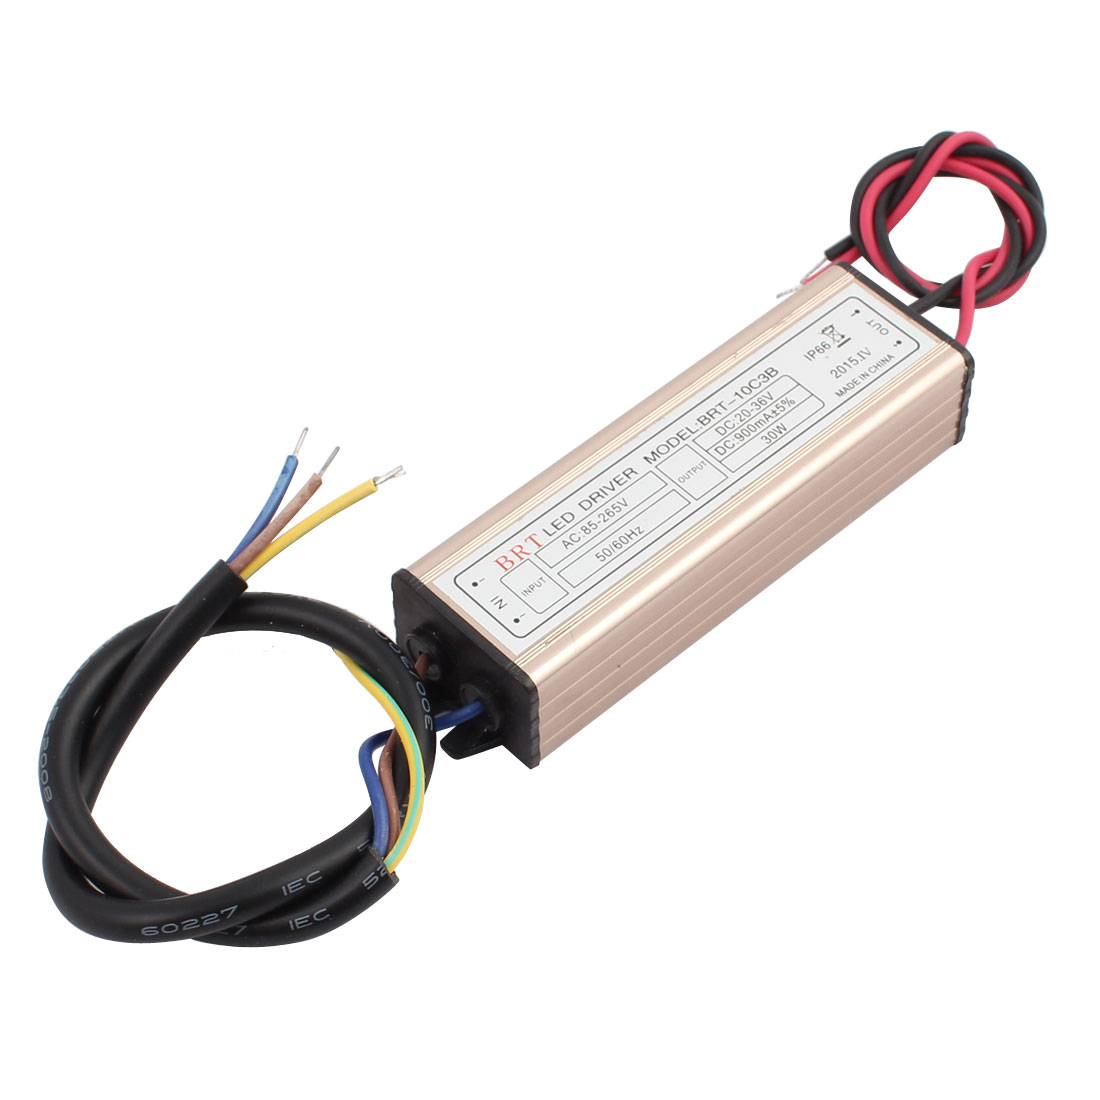 AC85-265V to DC20-36V 30W Transformer IP66 Waterproof LED Driver Power Supply